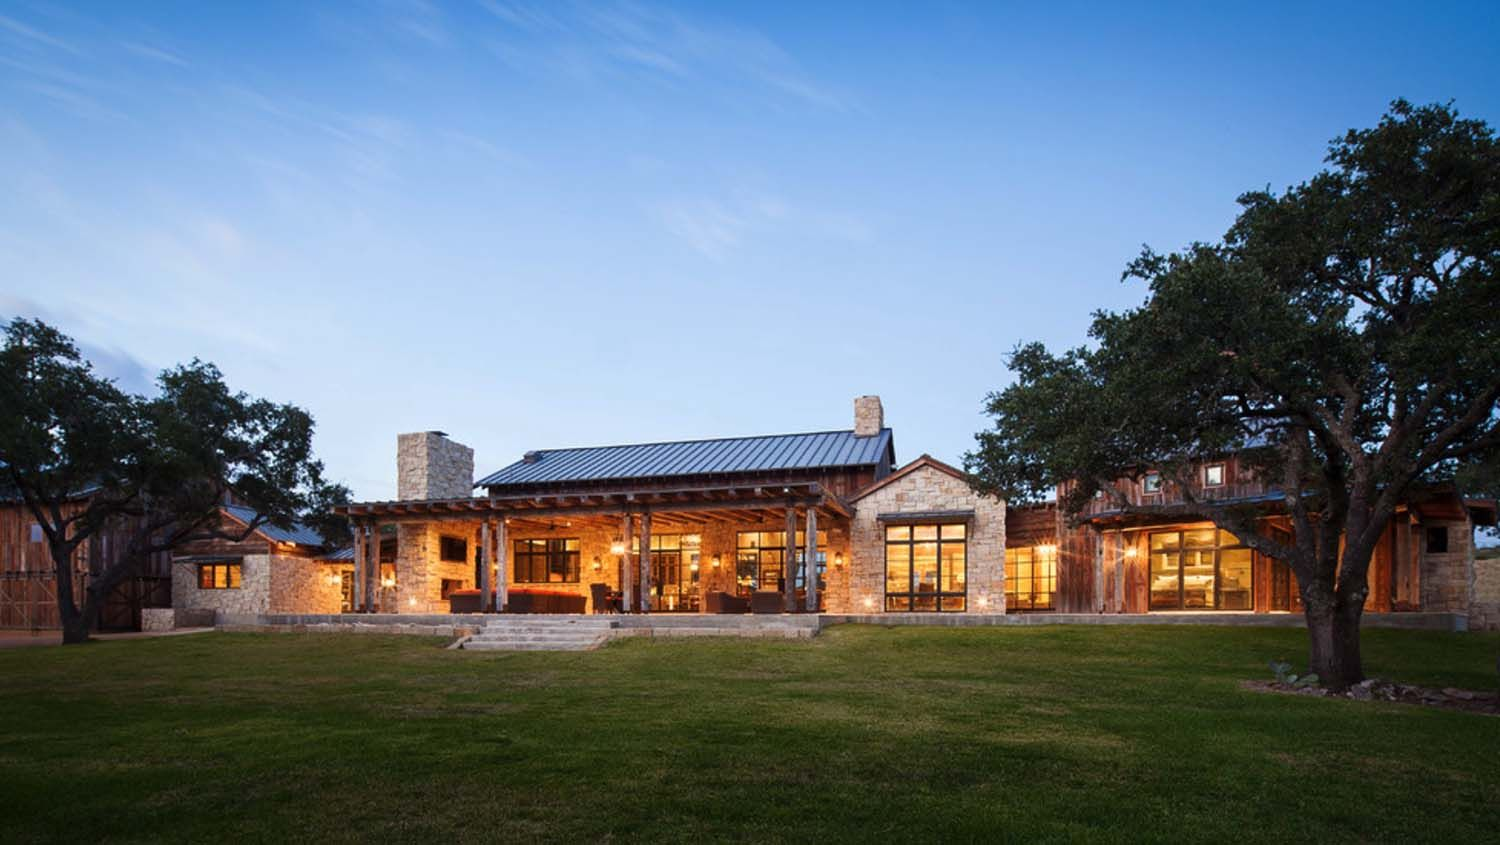 Modern rustic barn style retreat in texas hill country for Ranch style architecture